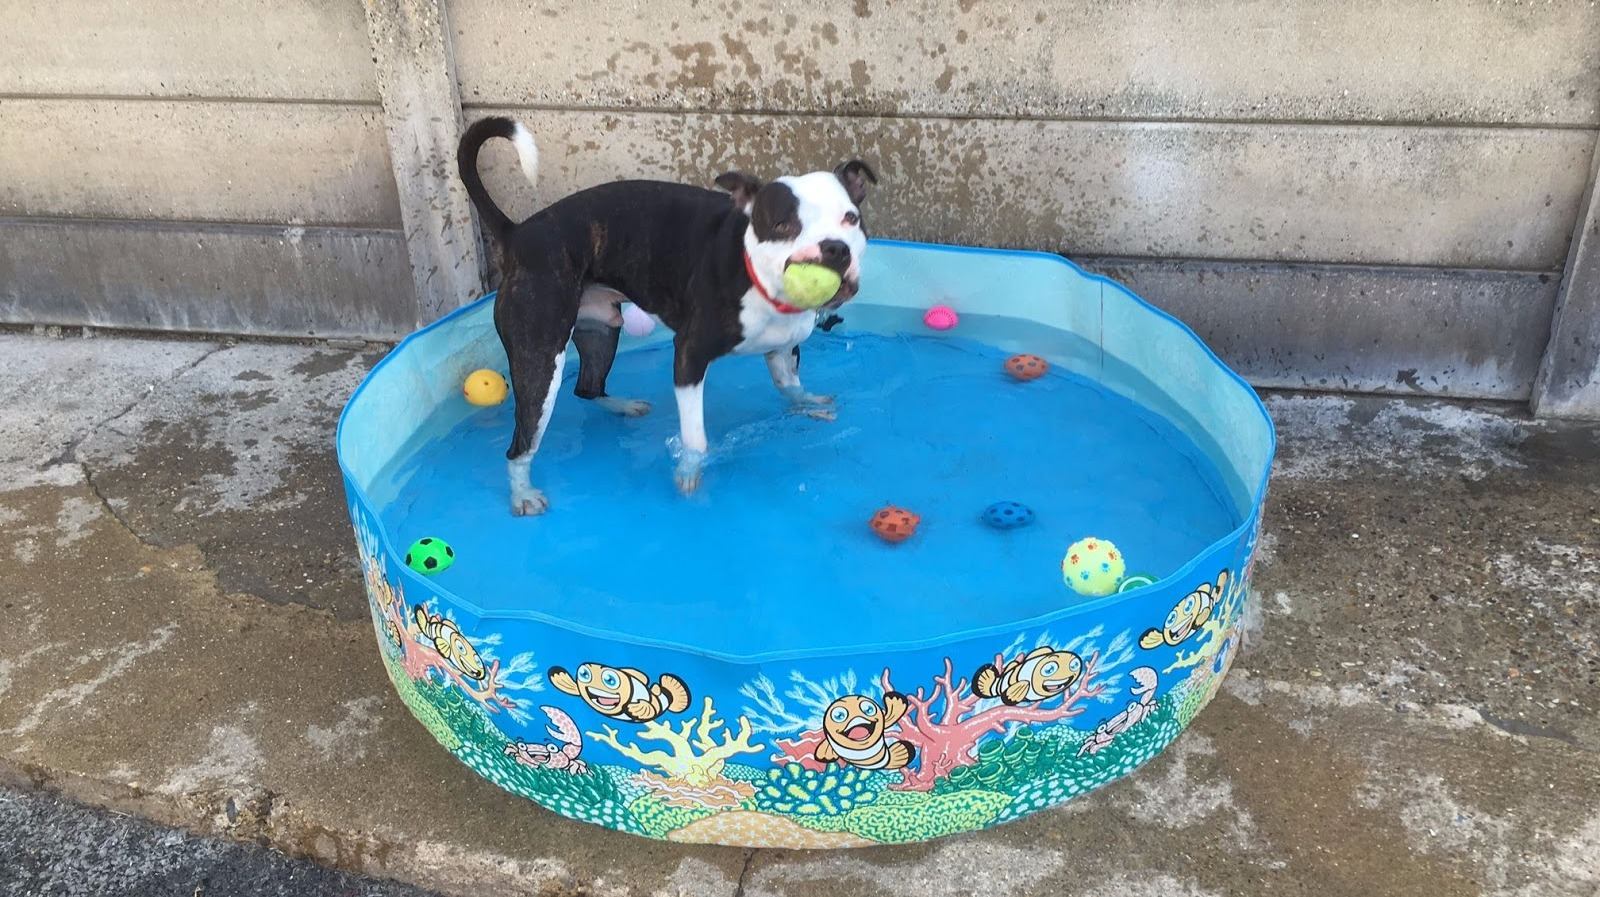 Rspca Receives Rise In Calls To Animals Suffering In Hot Weather Meridian